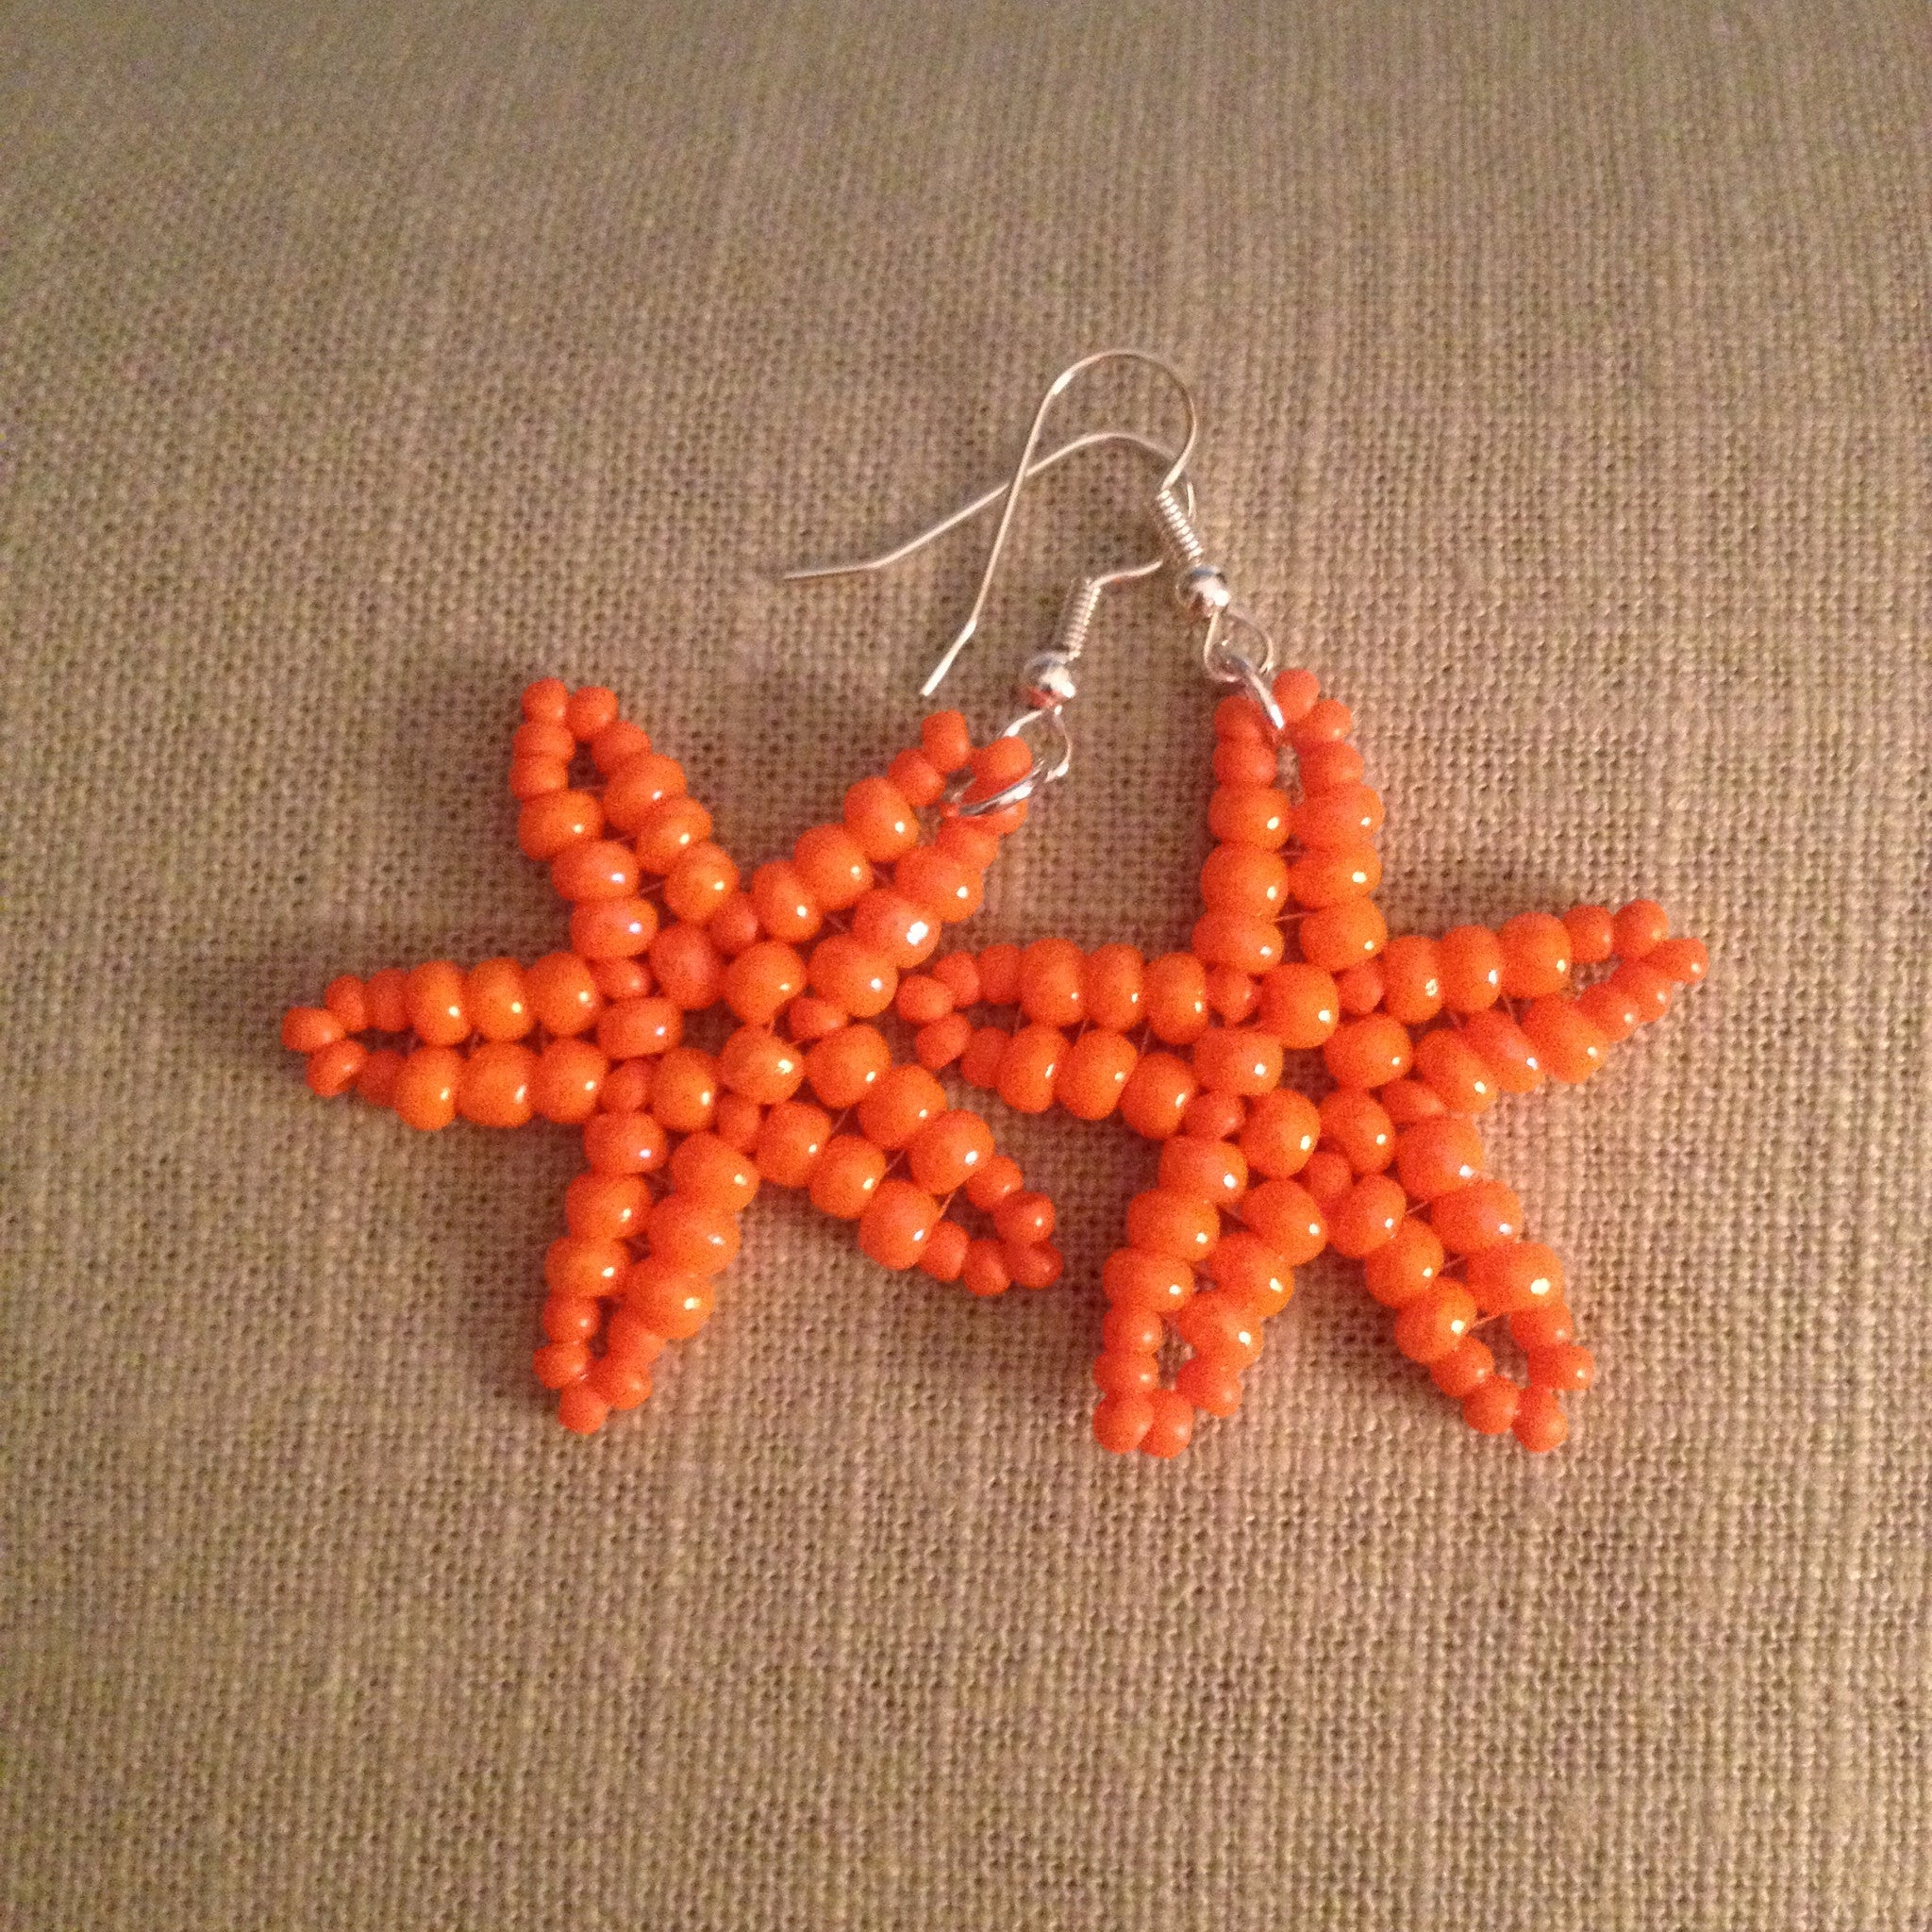 Starfish Tangerine Orange beaded earrings hand made beachy